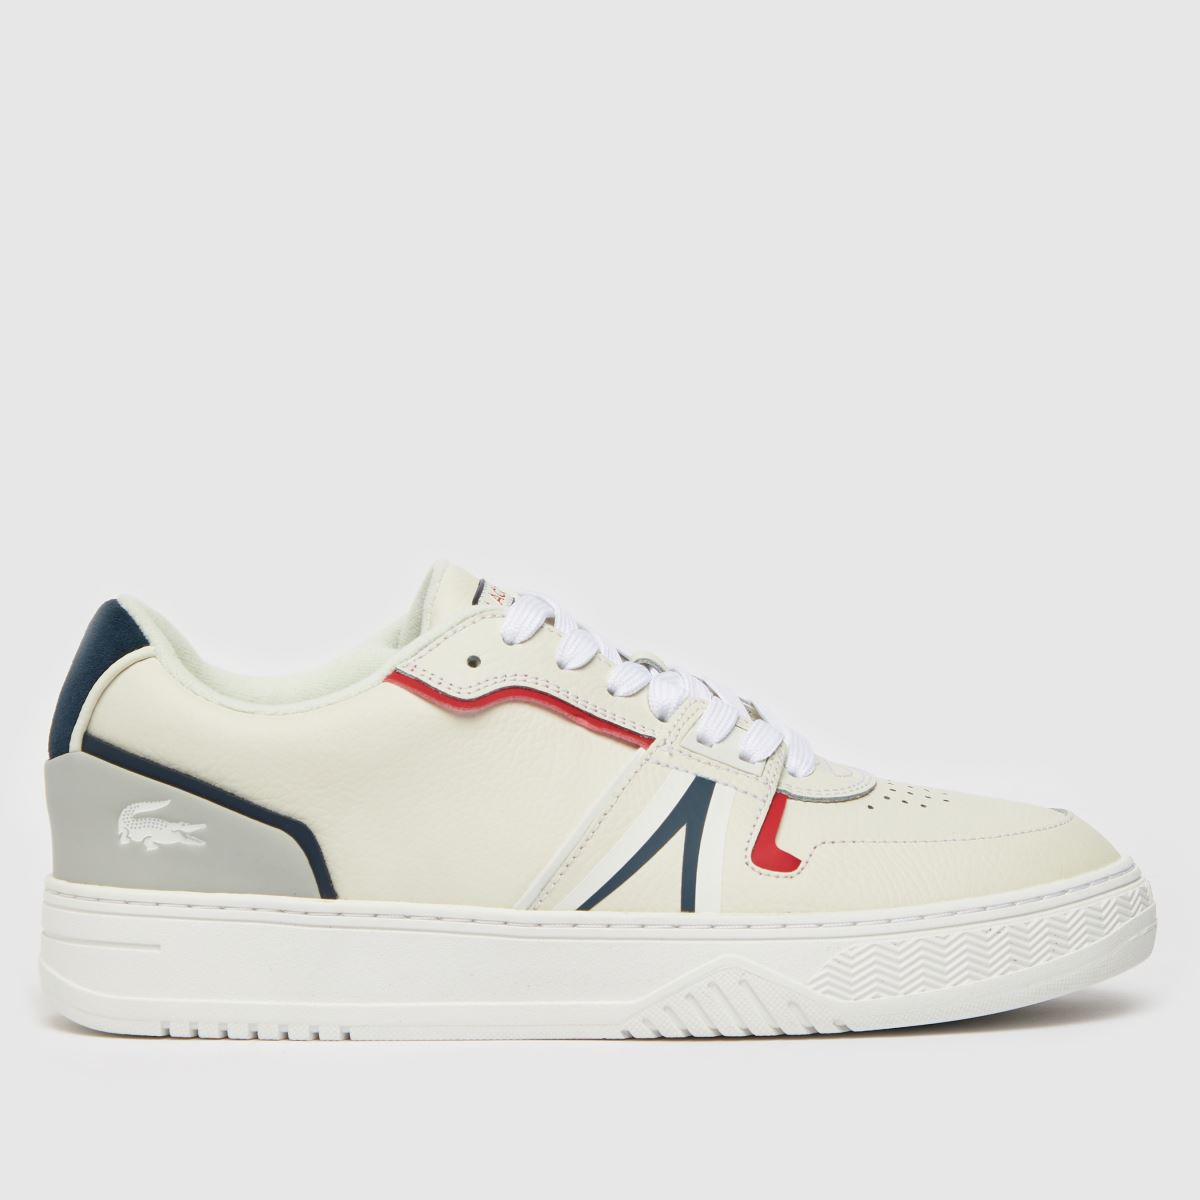 Lacoste White & Navy L001 Trainers